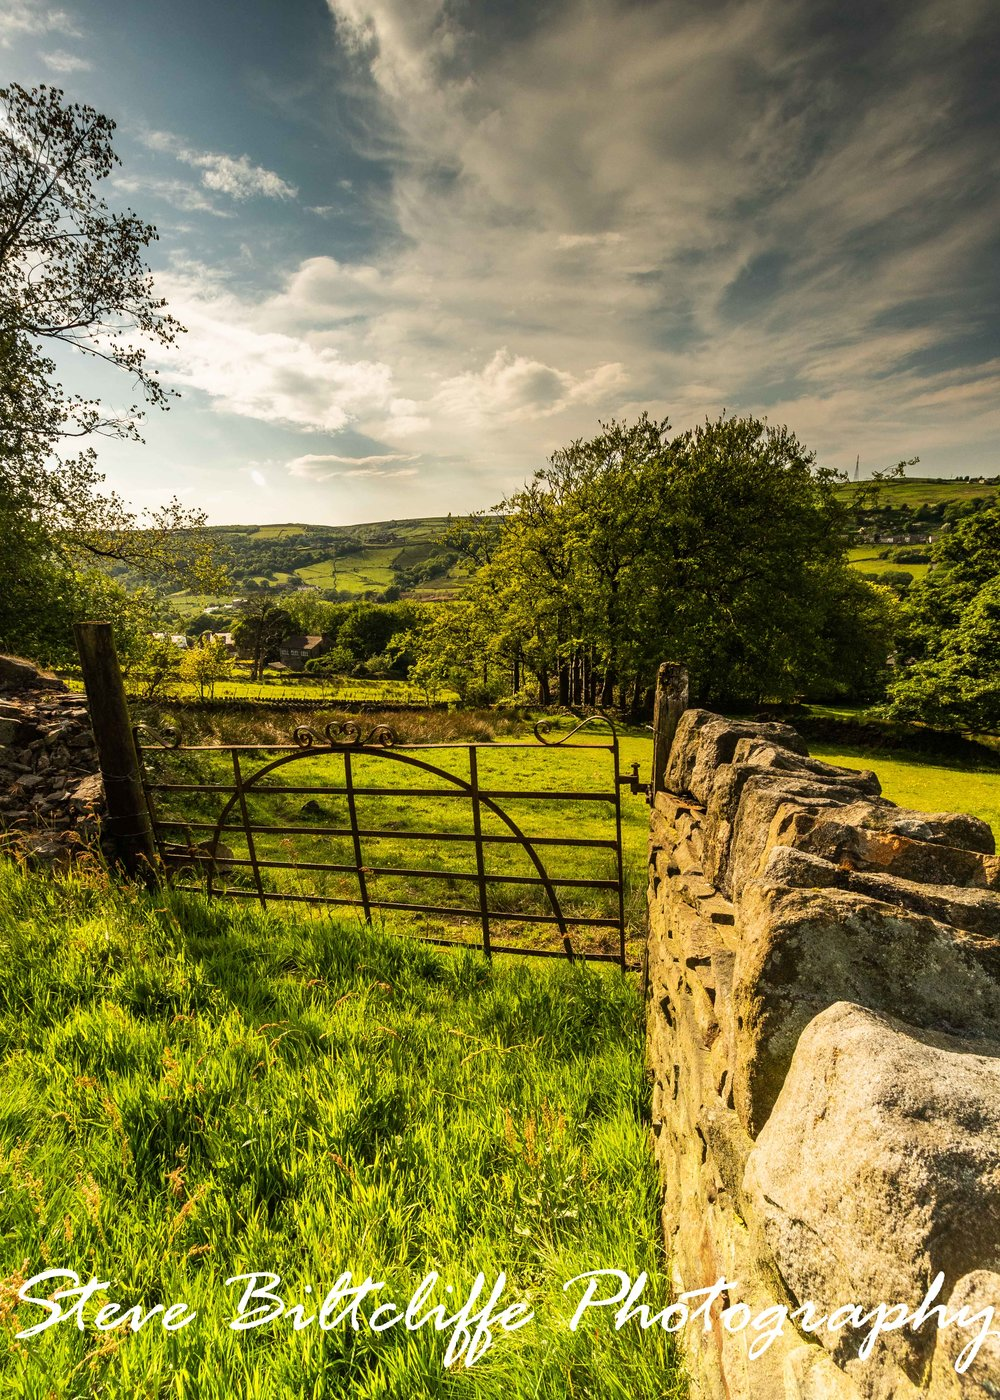 Colne Valley - Through the Gate